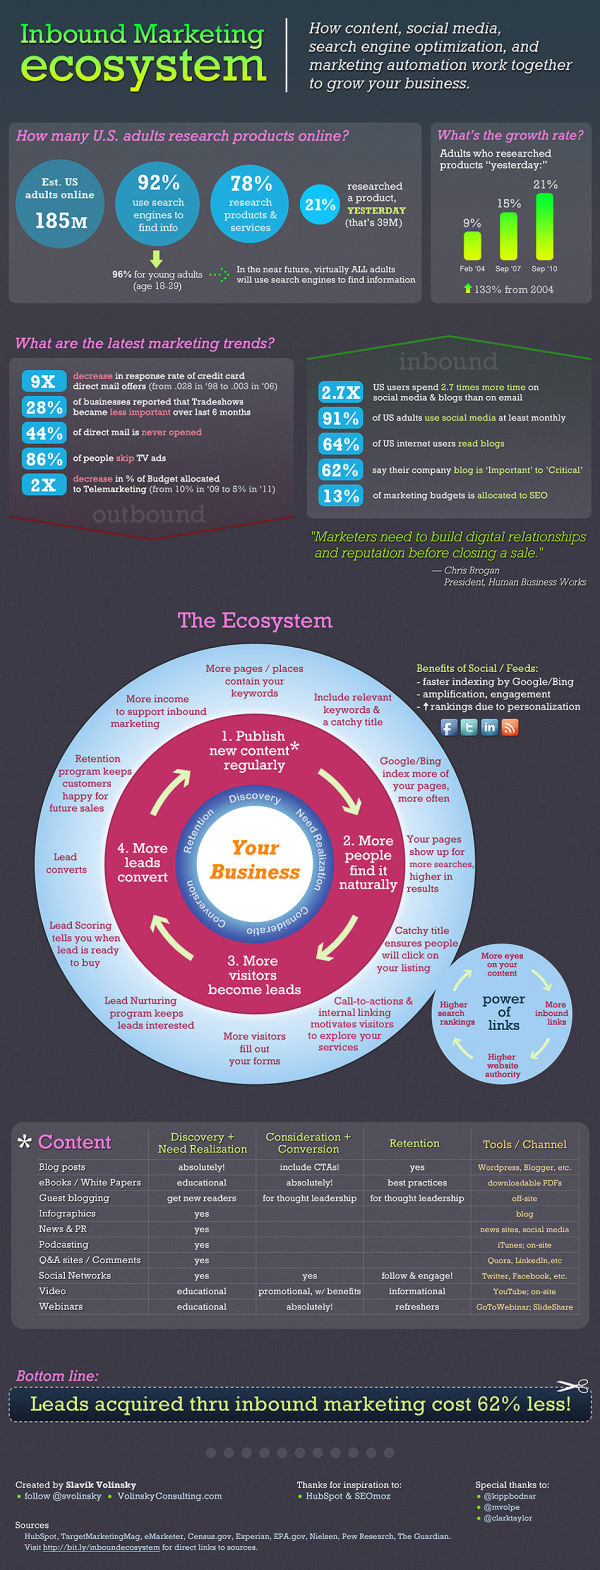 inbound marketing ecosystem 950px resized 600